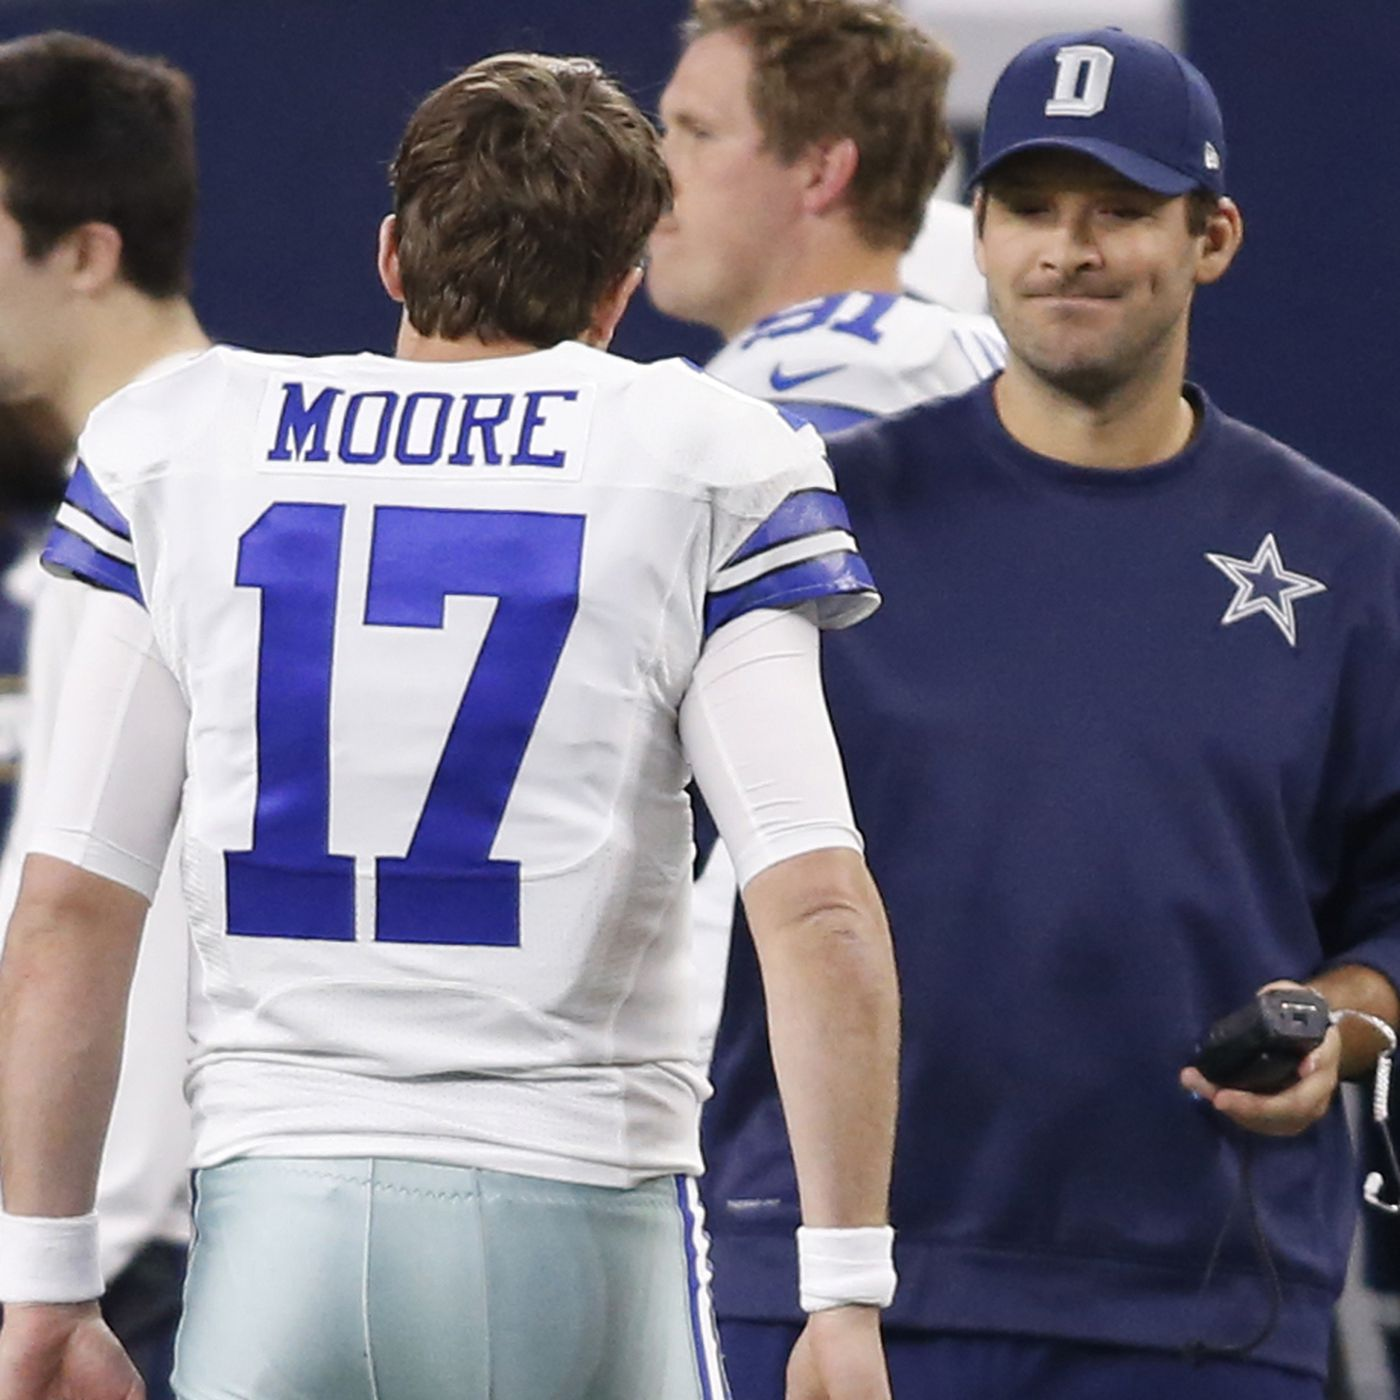 f45a66e0857 Cowboys News & Notes: Kellen Moore Is Small But Accurate, Looking To Leave  '15 On High Note - Blogging The Boys